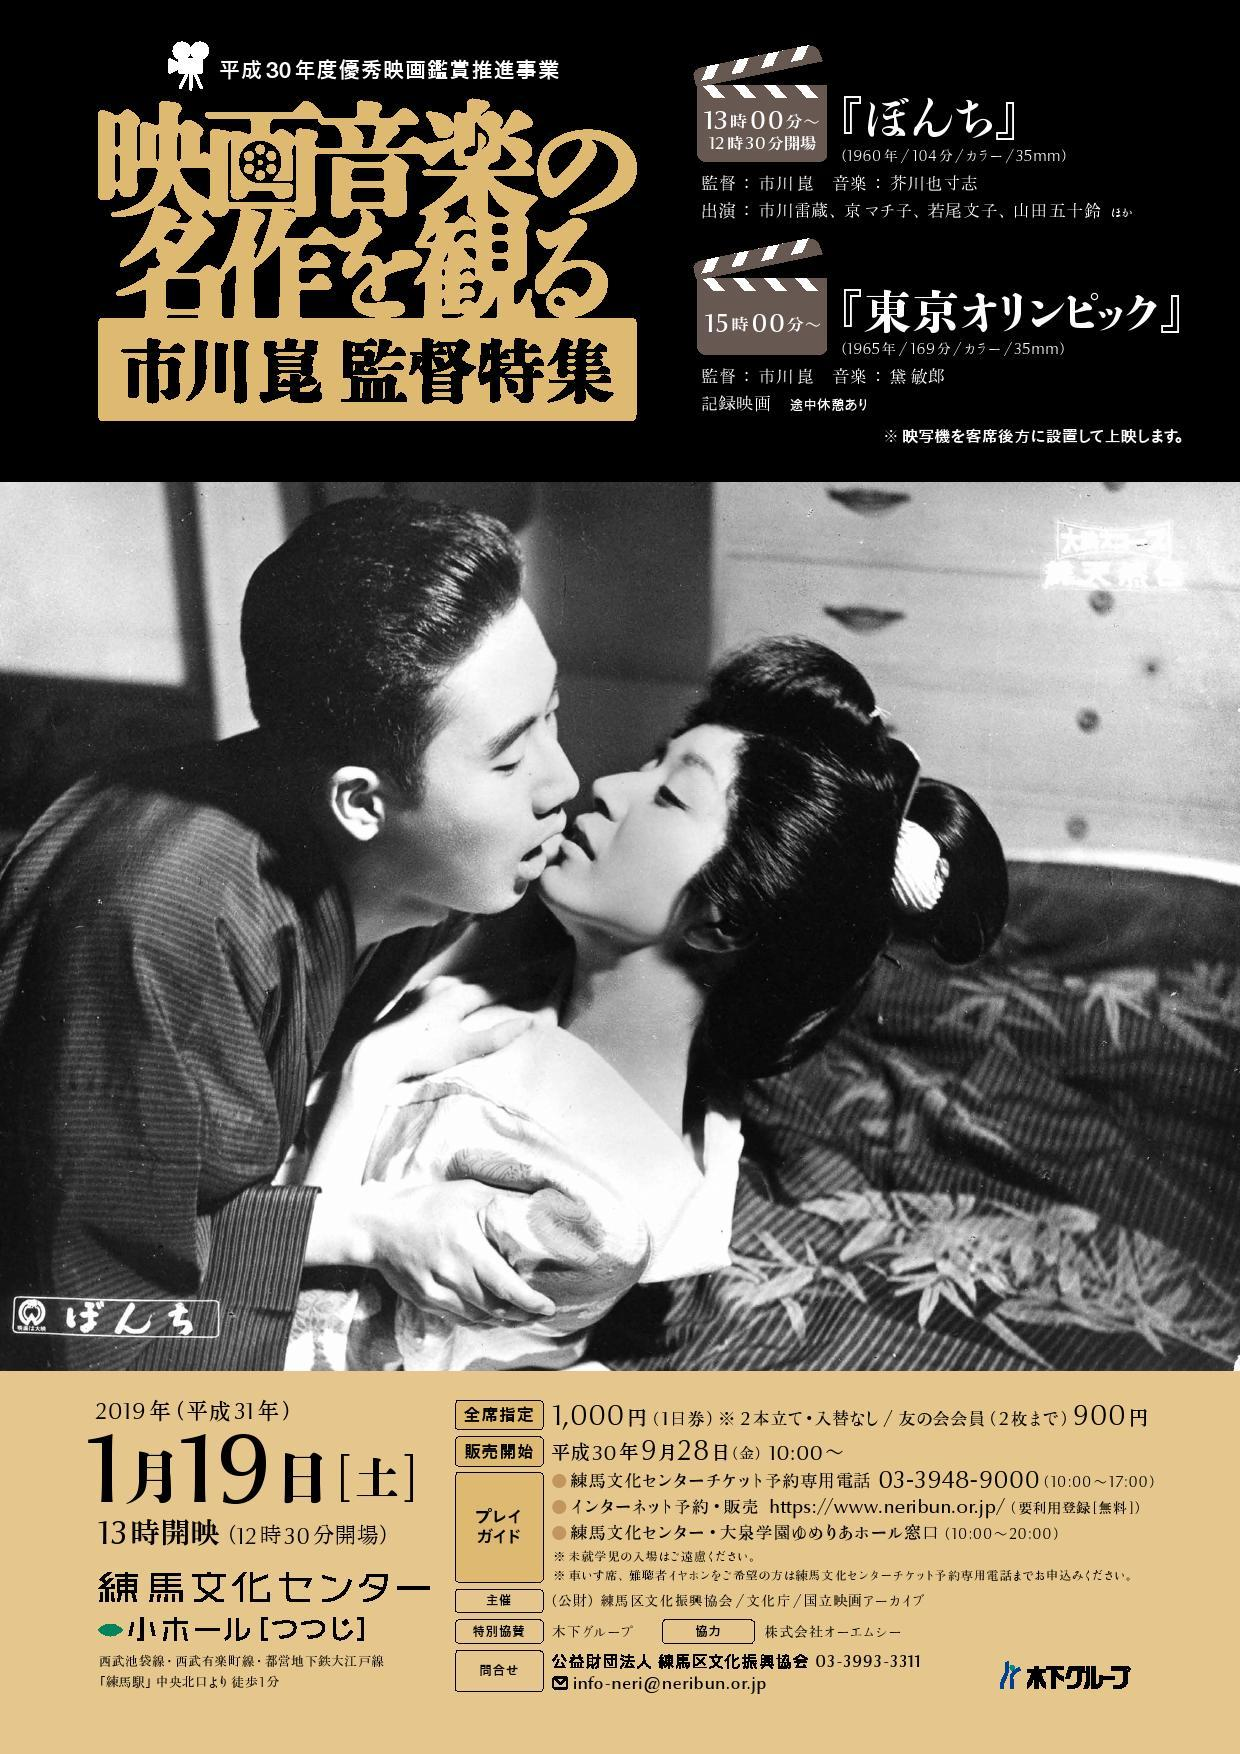 ... Manager Kon Ichikawa feature ... watching masterpiece of soundtrack